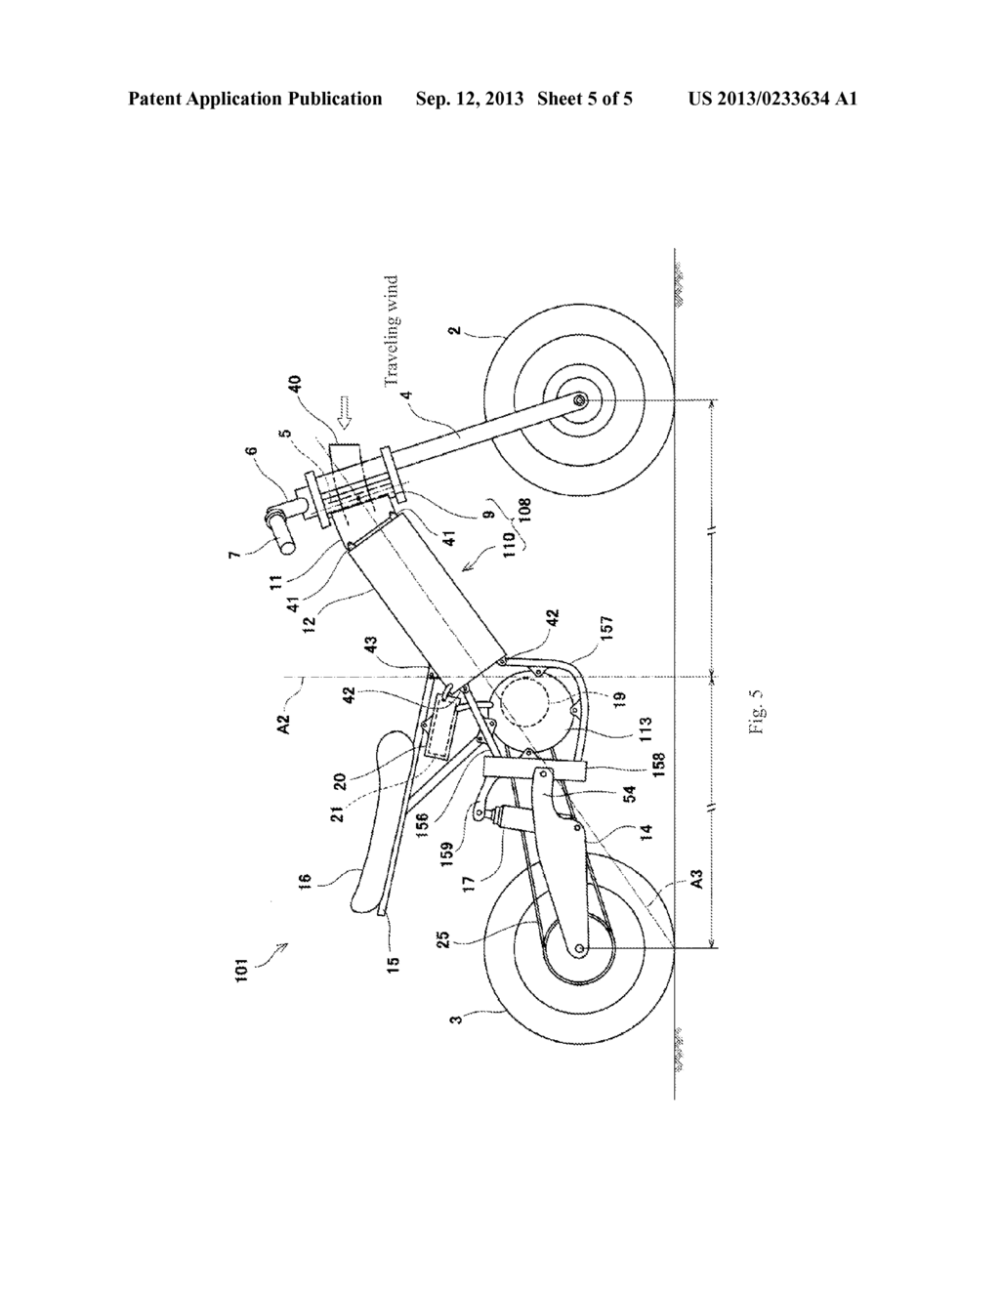 medium resolution of electric motorcycle diagram schematic and image 06 yamaha wiring diagram electric motorcycle diagram